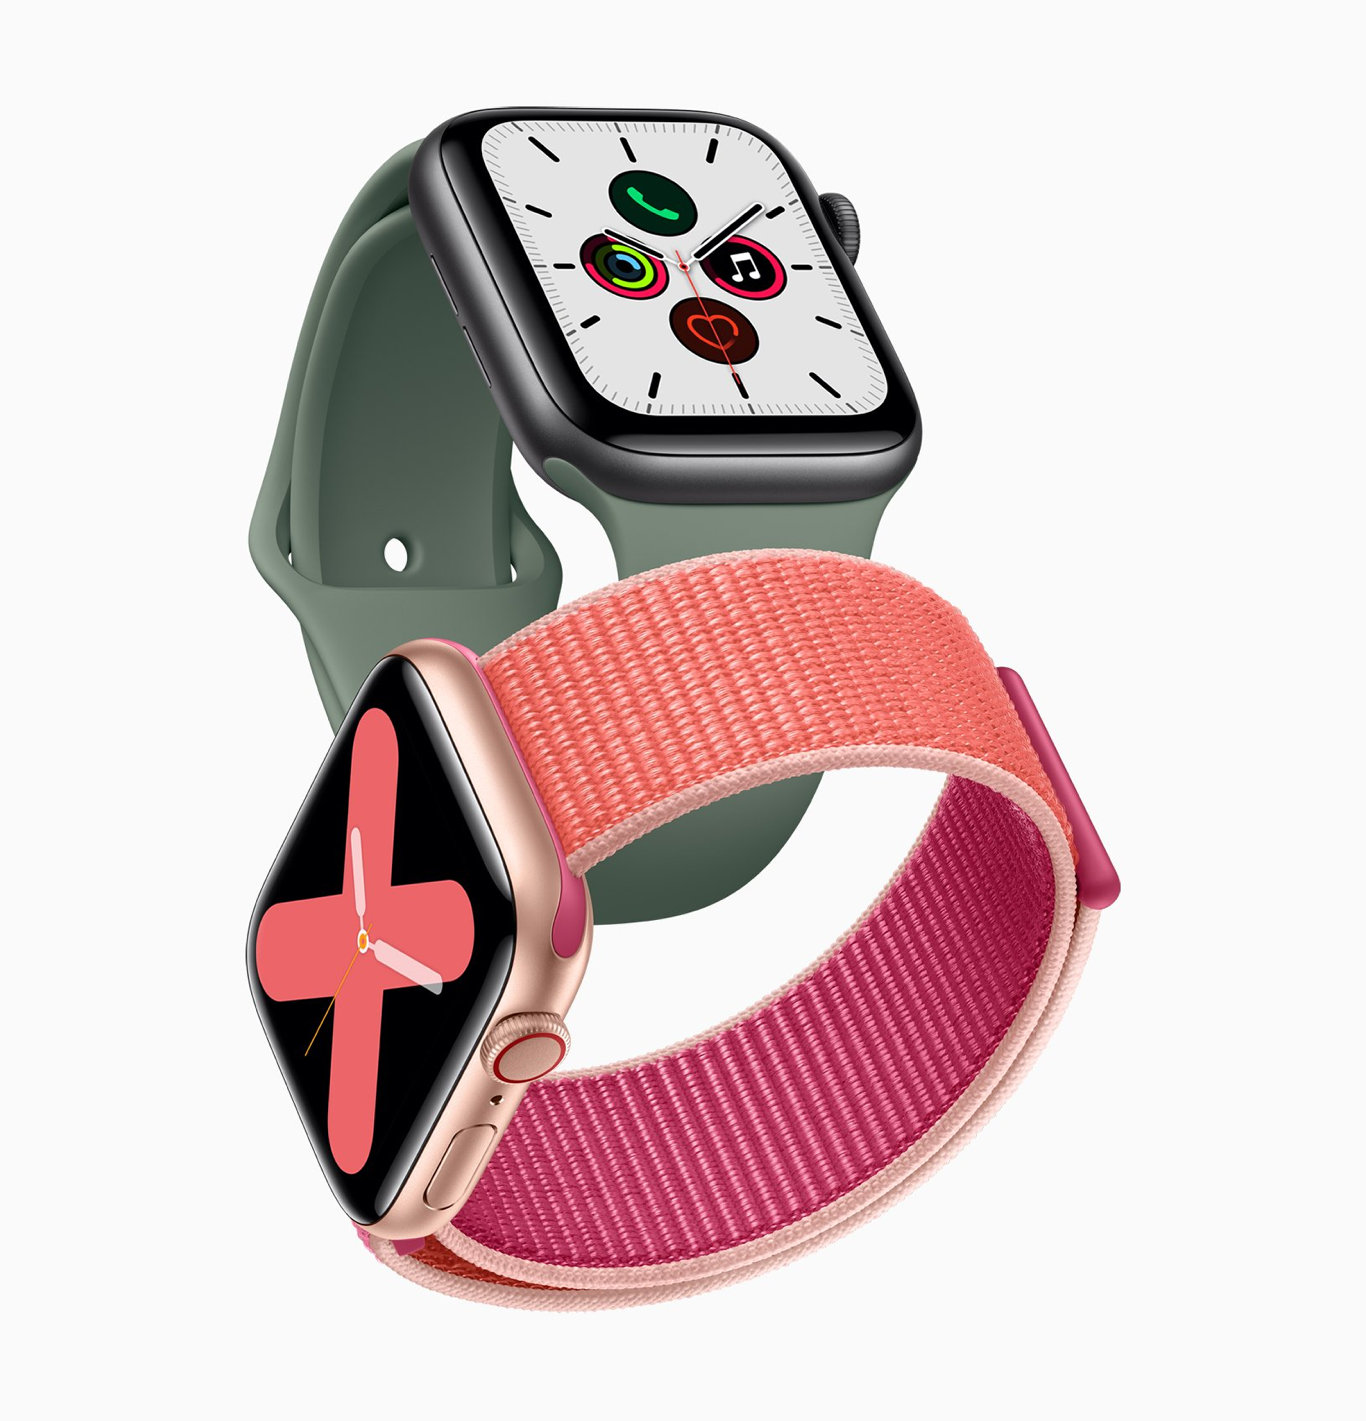 SMARTER: Apple Watch Series 5 is arguably the best smatch watch in the world.